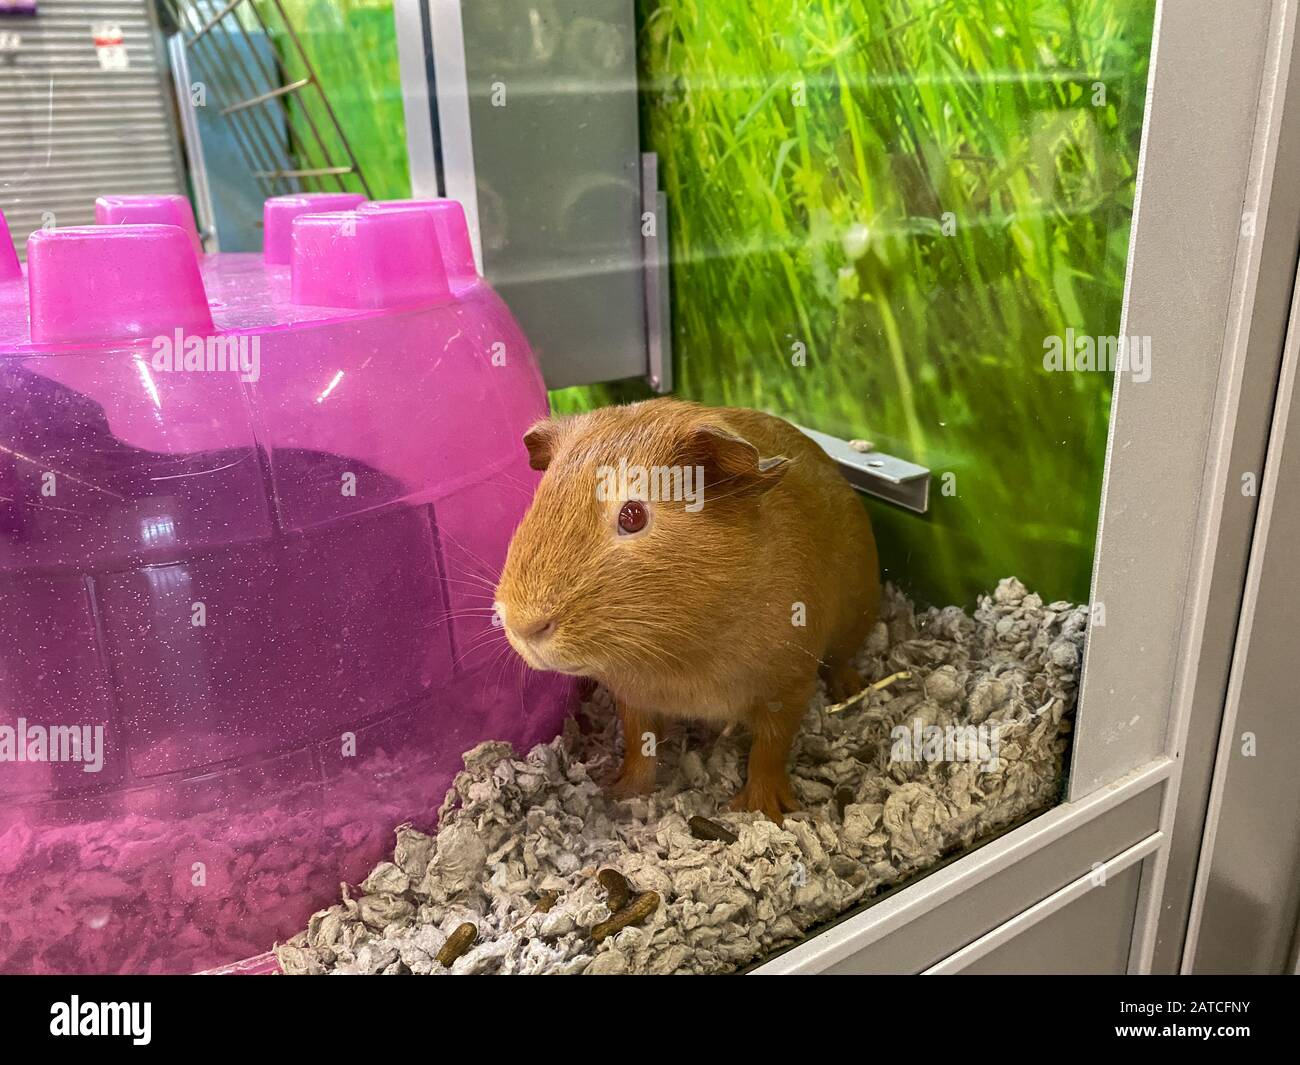 Pet Superstore High Resolution Stock Photography and Images - Alamy